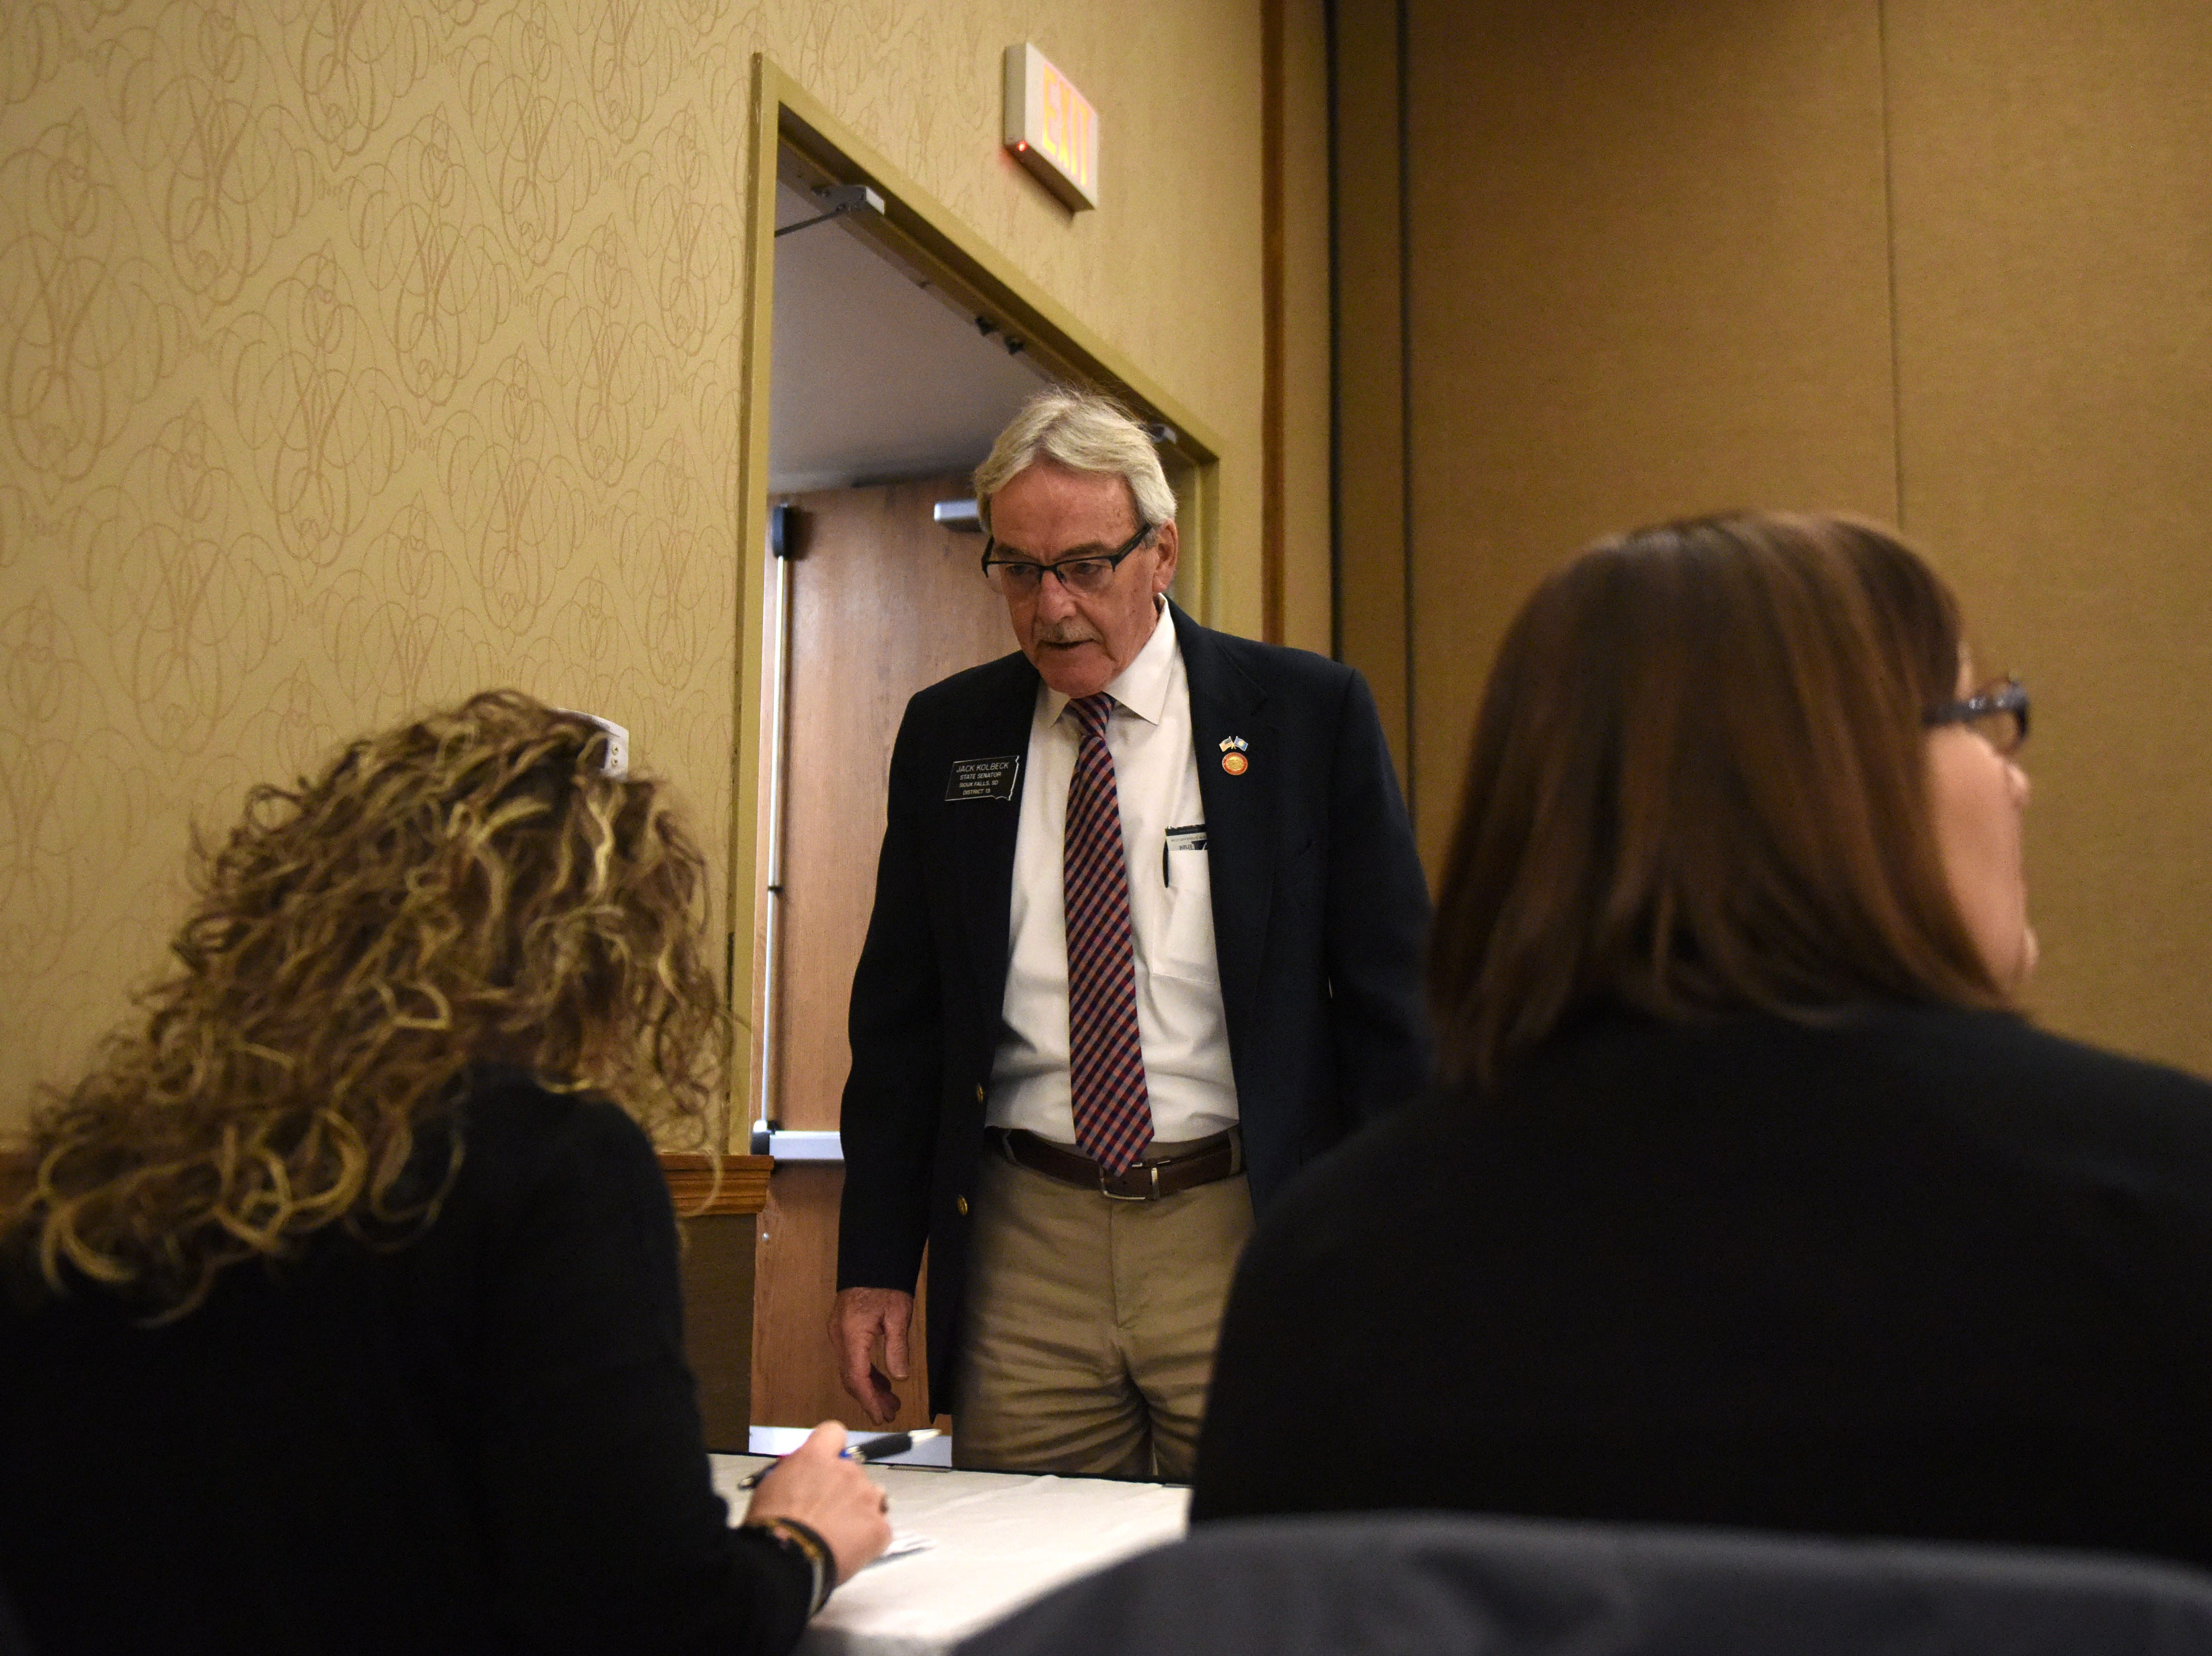 Senator Jack Kolbeck attends the Chamber of Commerce legislative breakfast, Thursday, Jan. 3, 2019 at the Best Western Plus Ramkota Hotel in Sioux Falls, S.D.